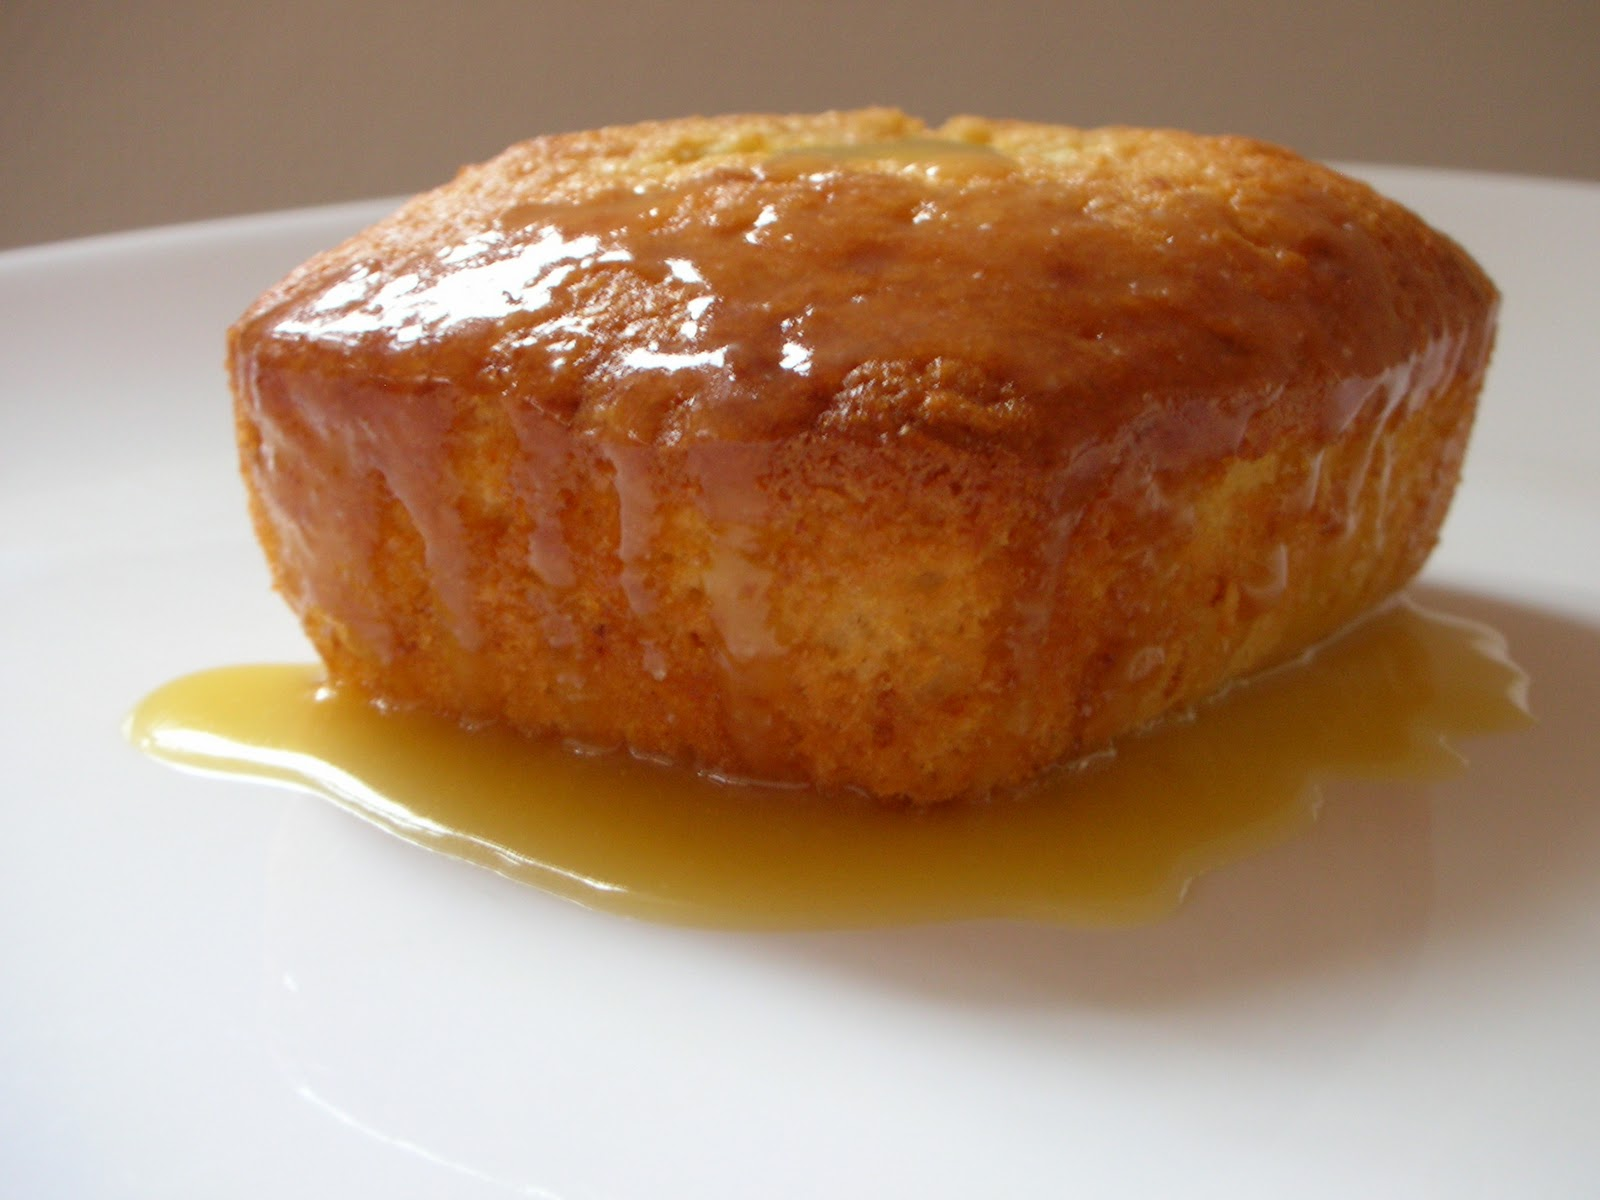 ... Eats: Sticky apricot and coconut cake with butterscotch sauce recipe